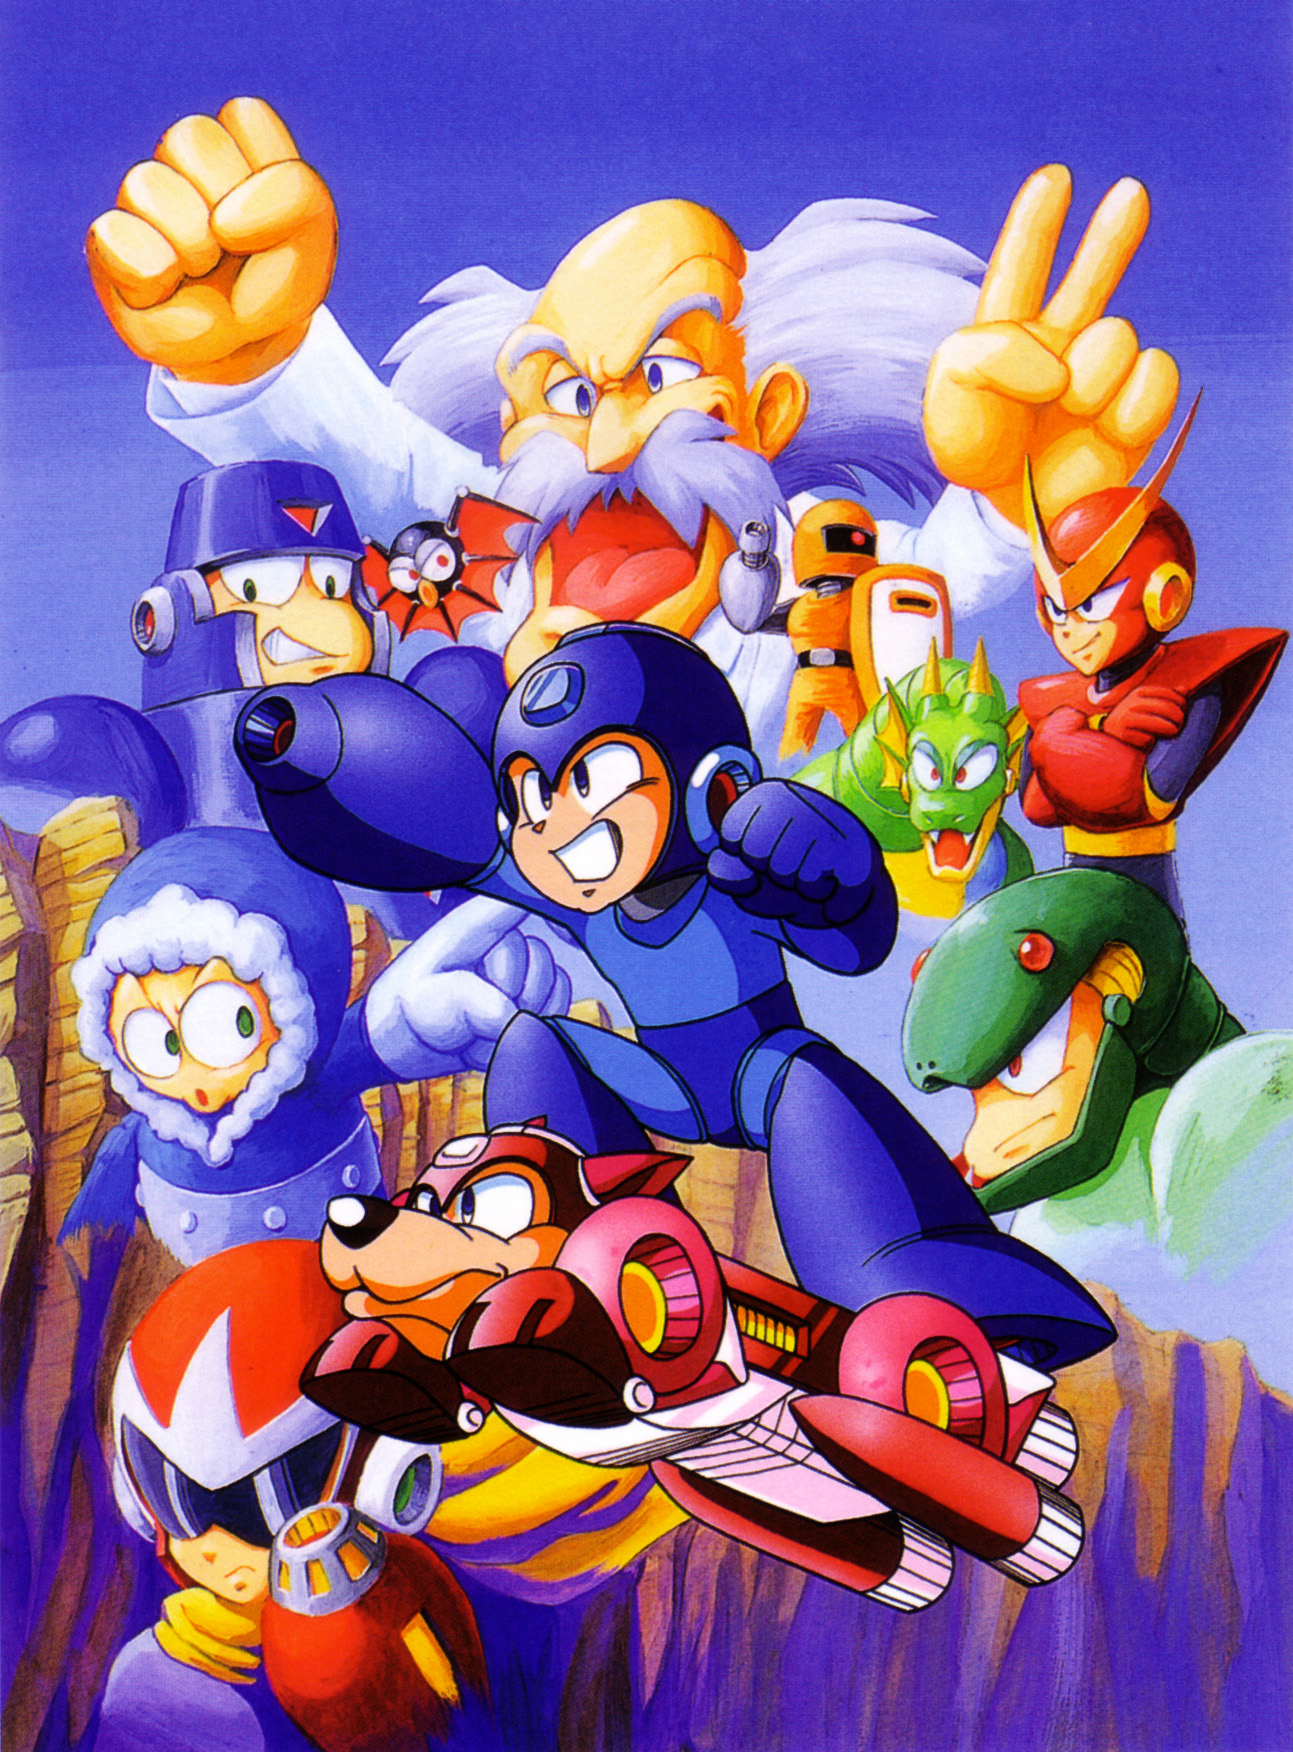 mega man 2 the power fighters rom